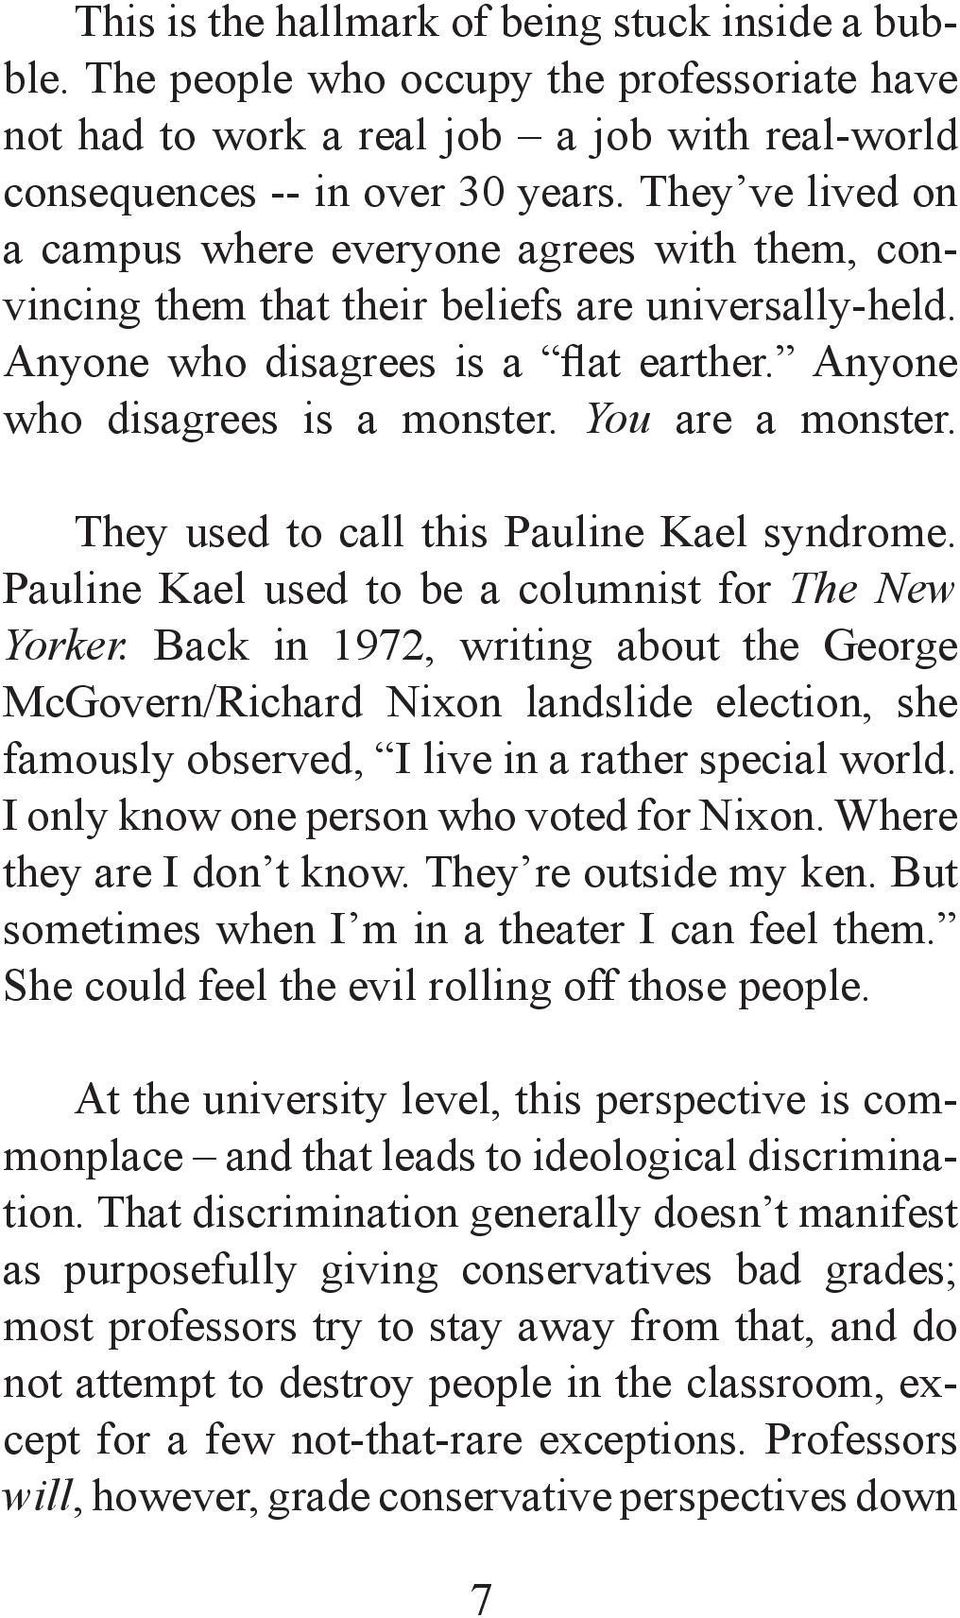 You are a monster. They used to call this Pauline Kael syndrome. Pauline Kael used to be a columnist for The New Yorker.